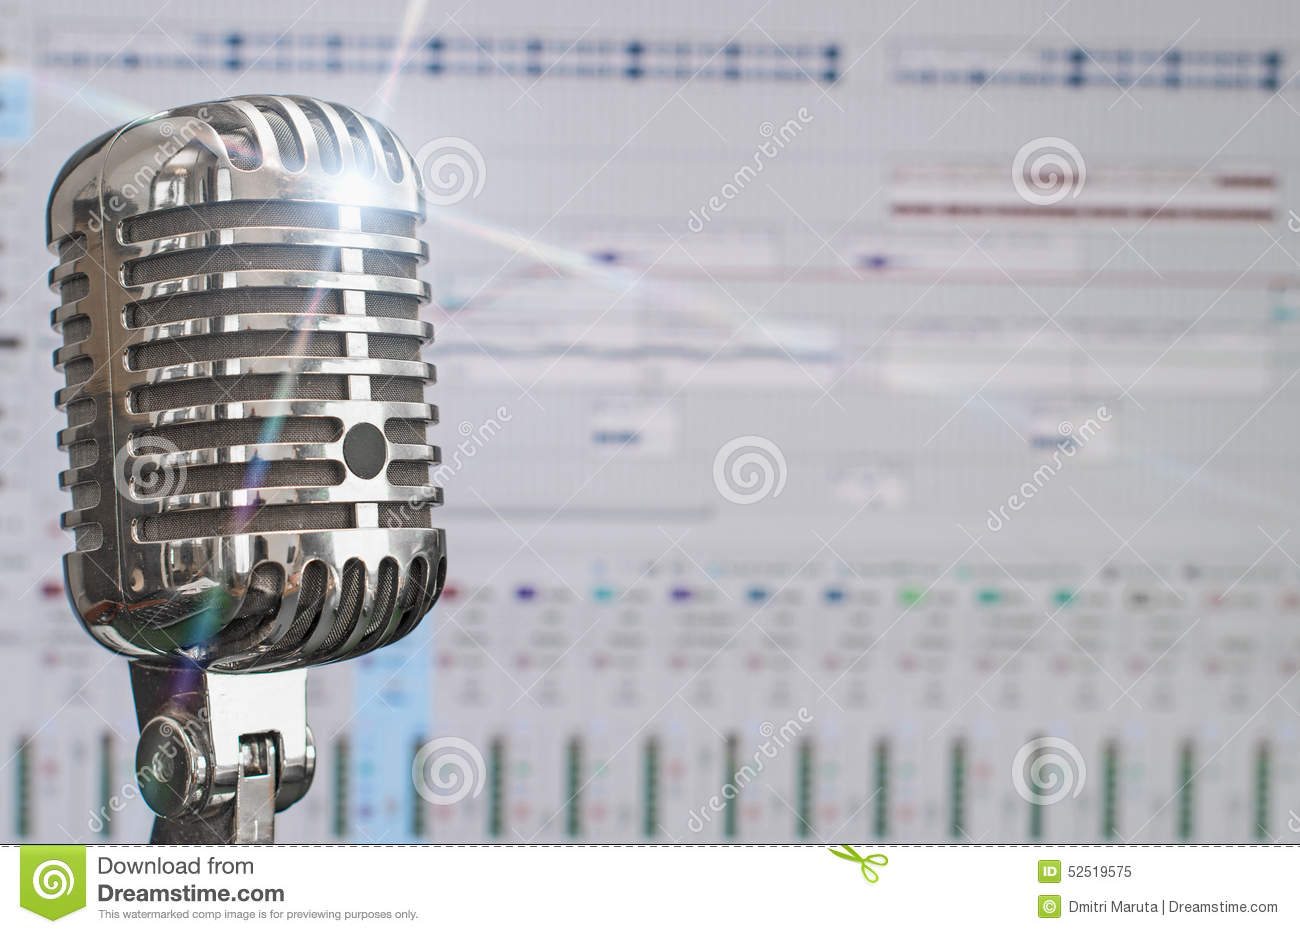 Retro microphone over recording software.